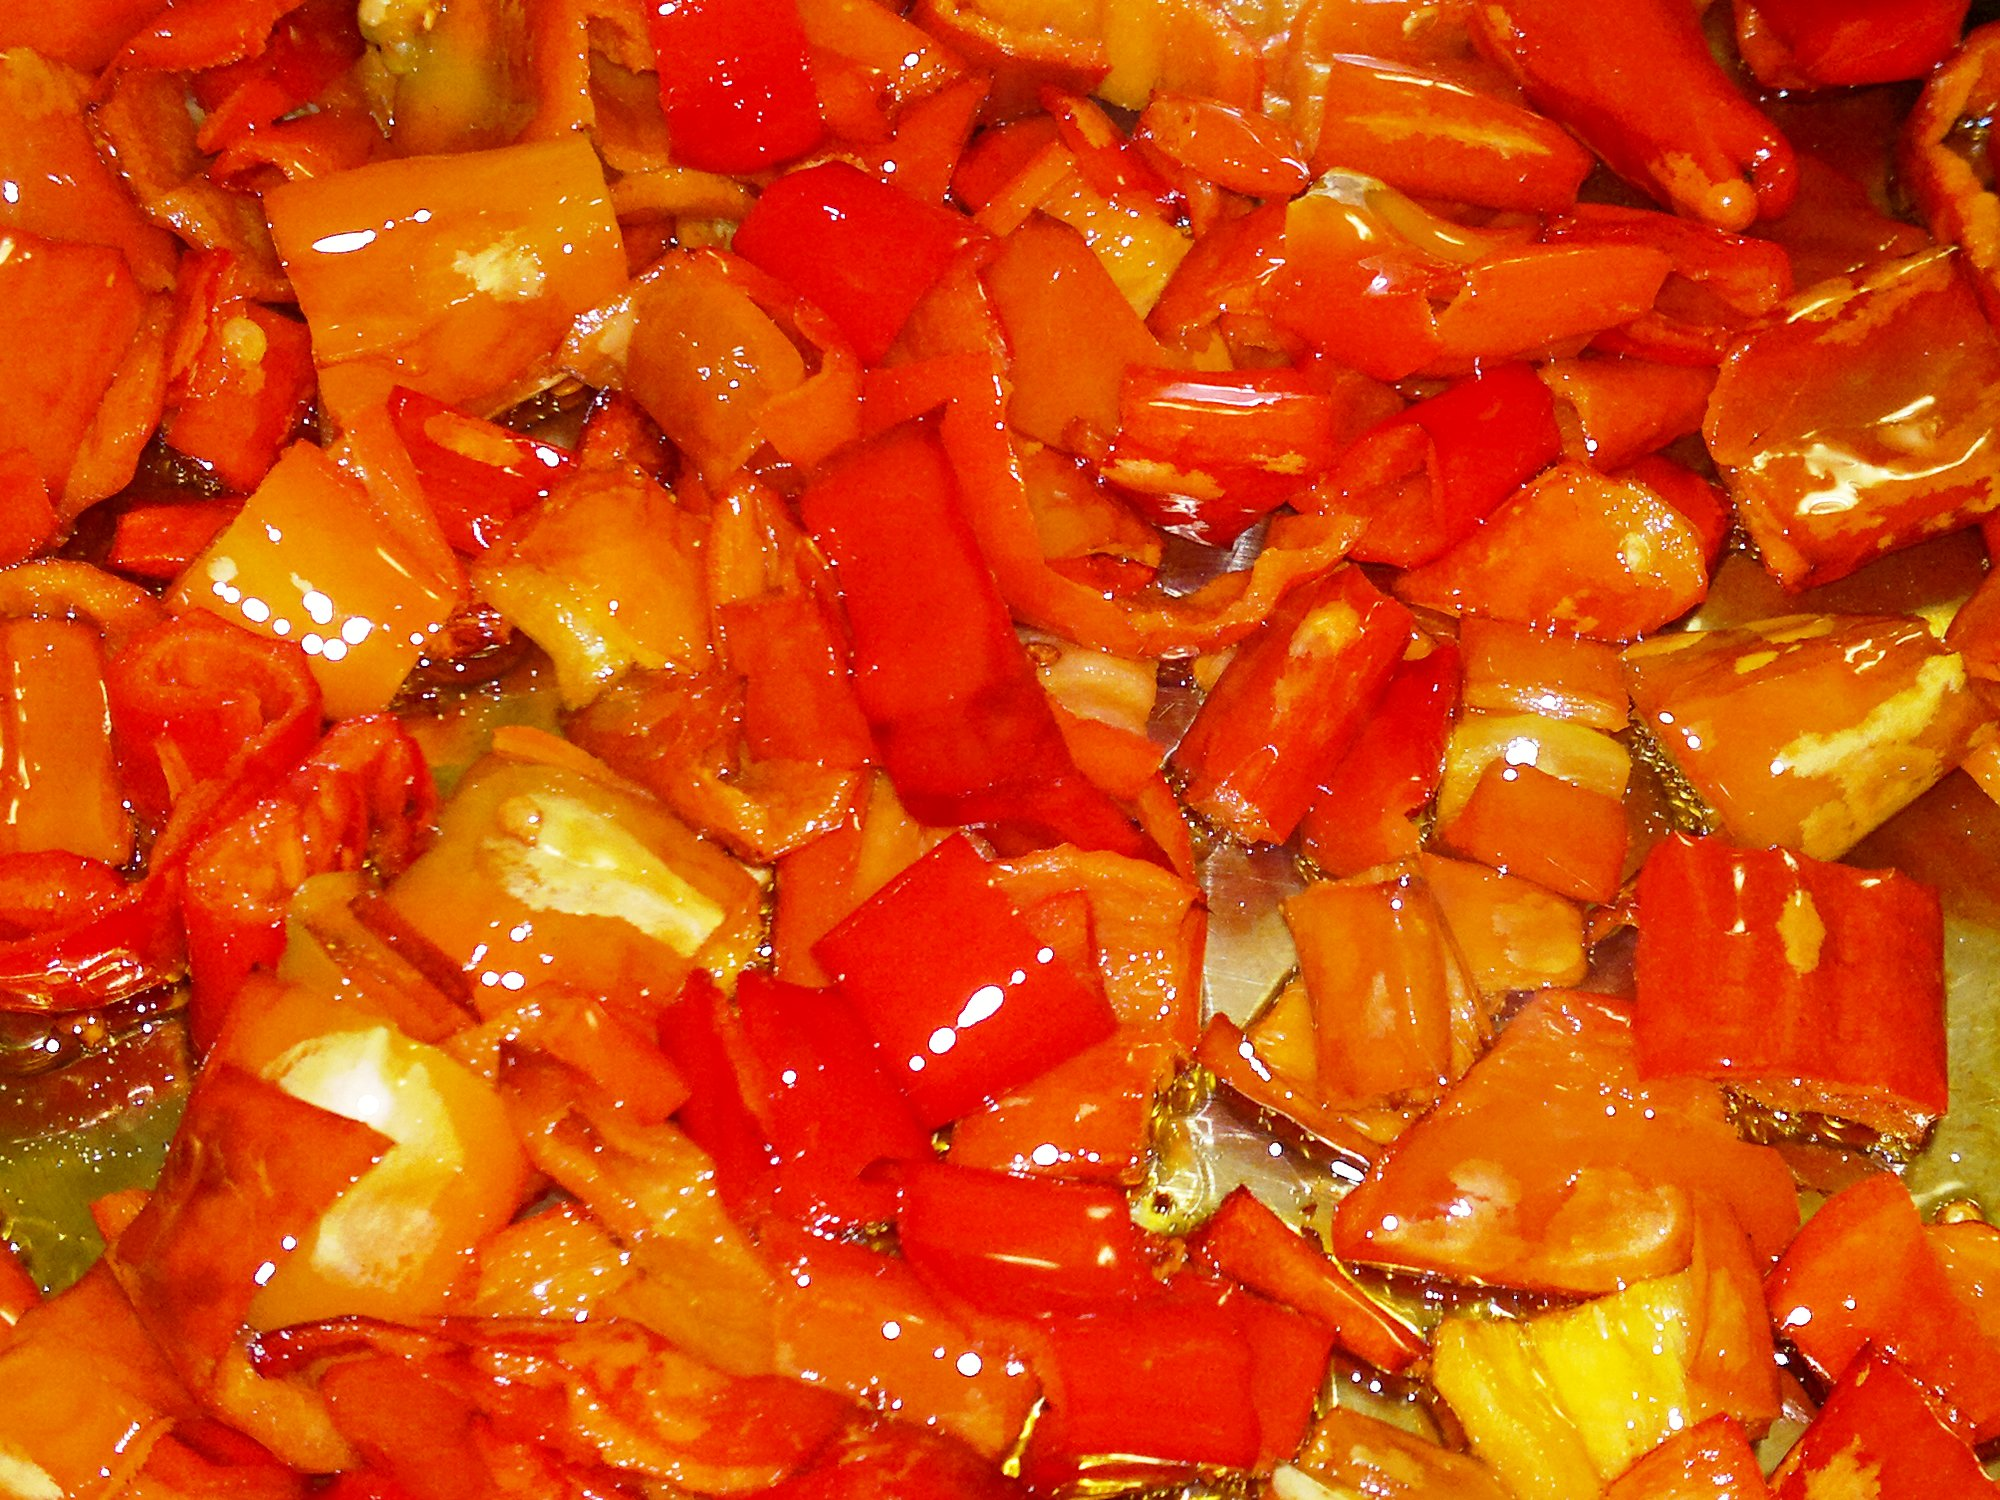 Sliced red peppers cooking gently until soft